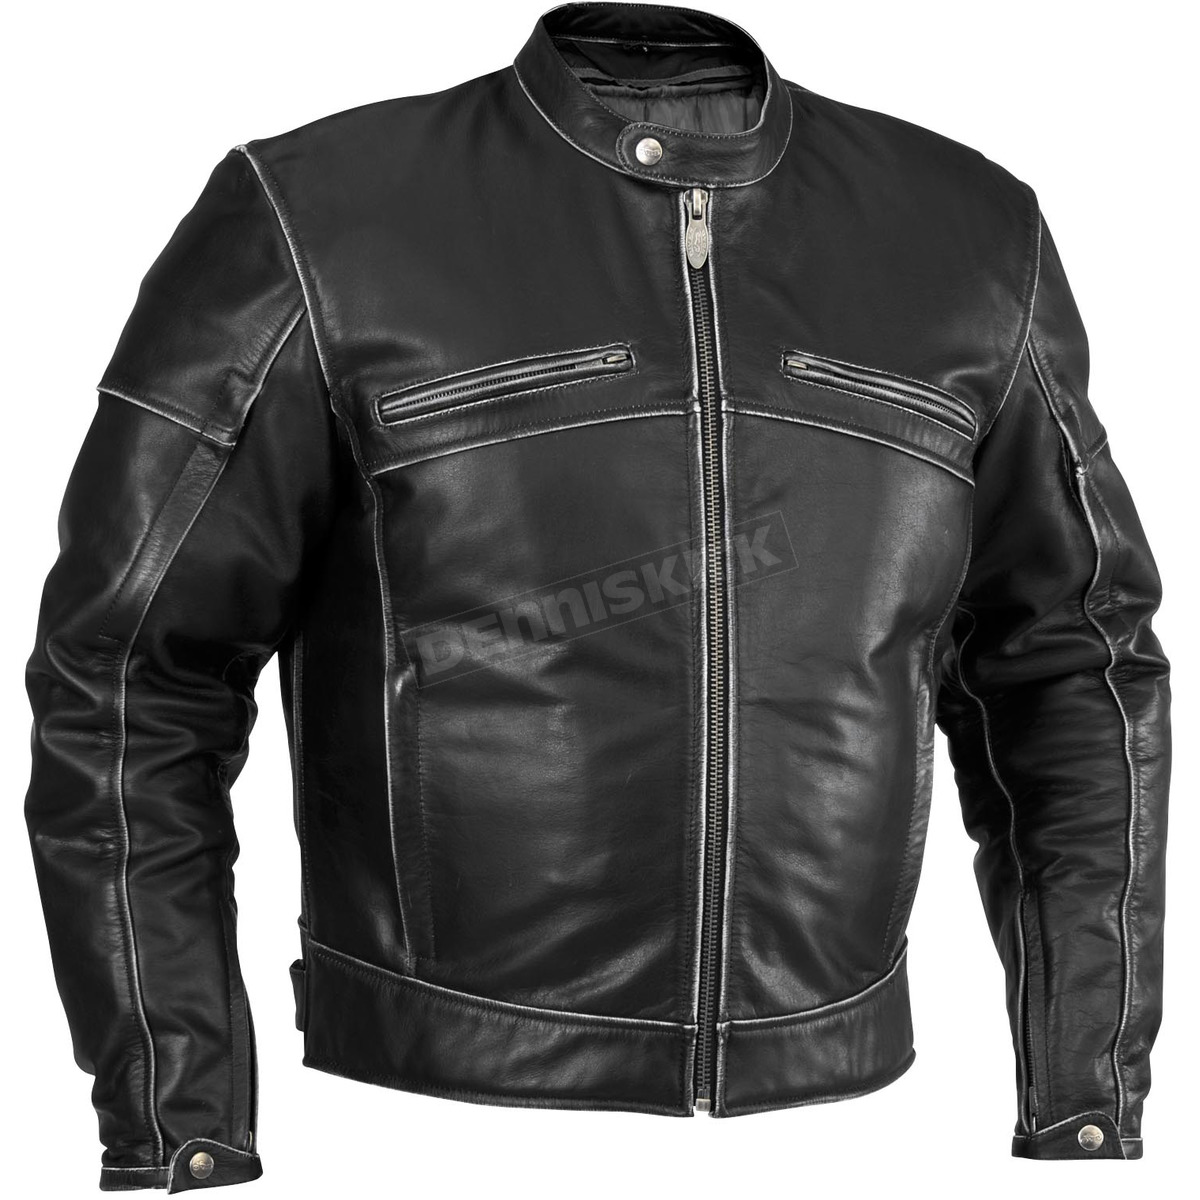 River road leather motorcycle jackets